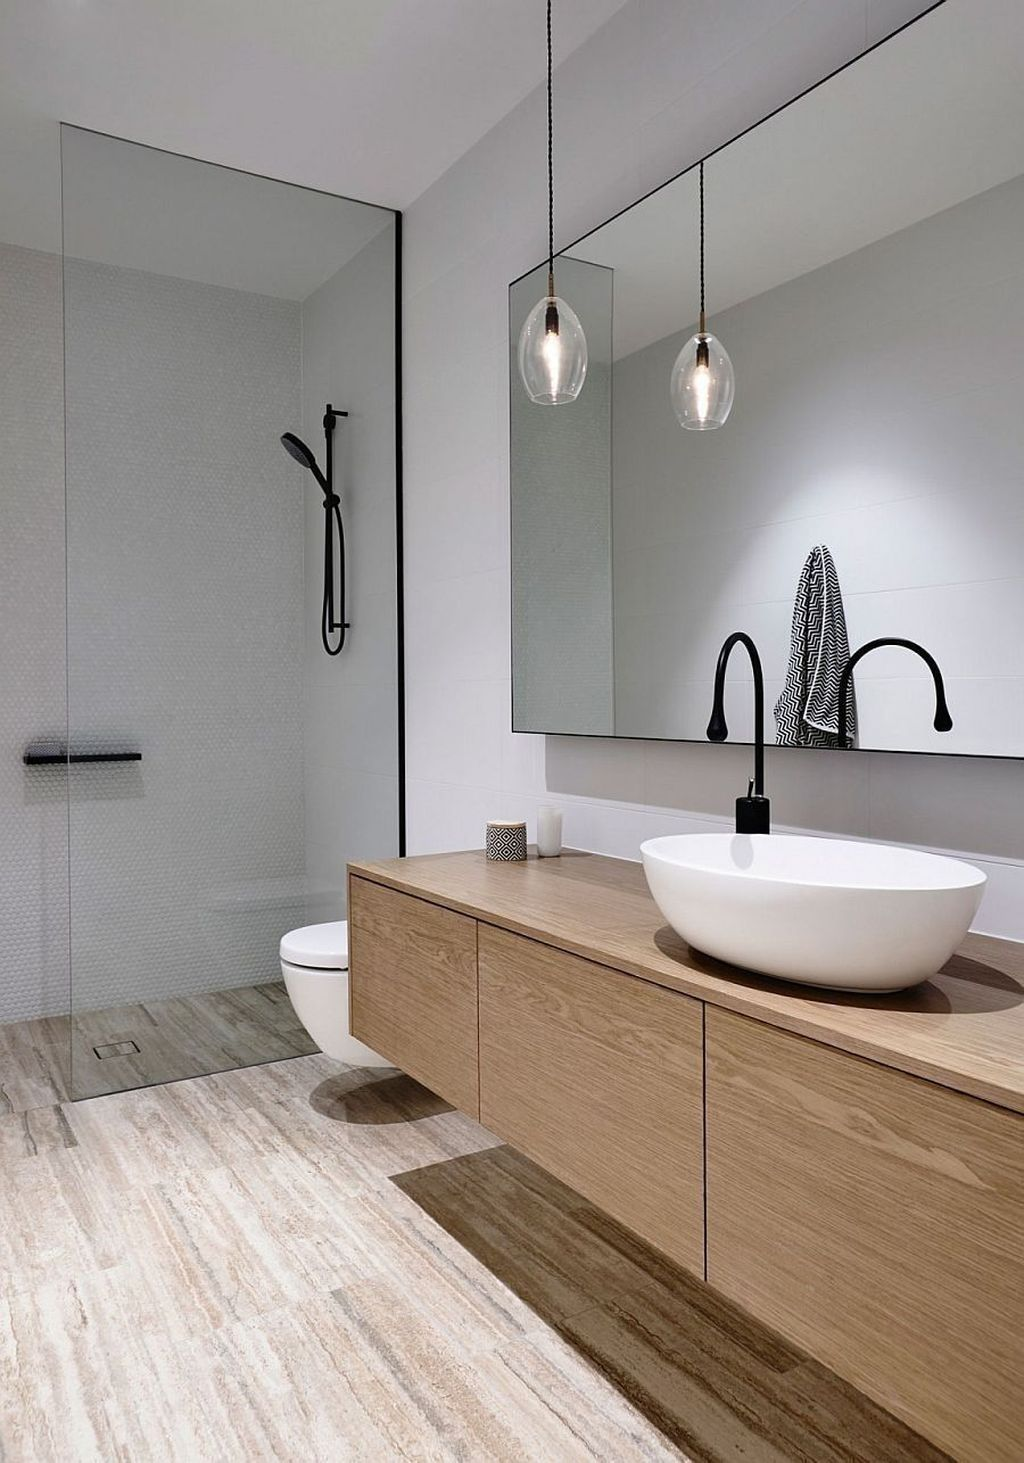 25 Tranquil Scandinavian Bathroom Decor To Get Rid Of Daily Stress - N16